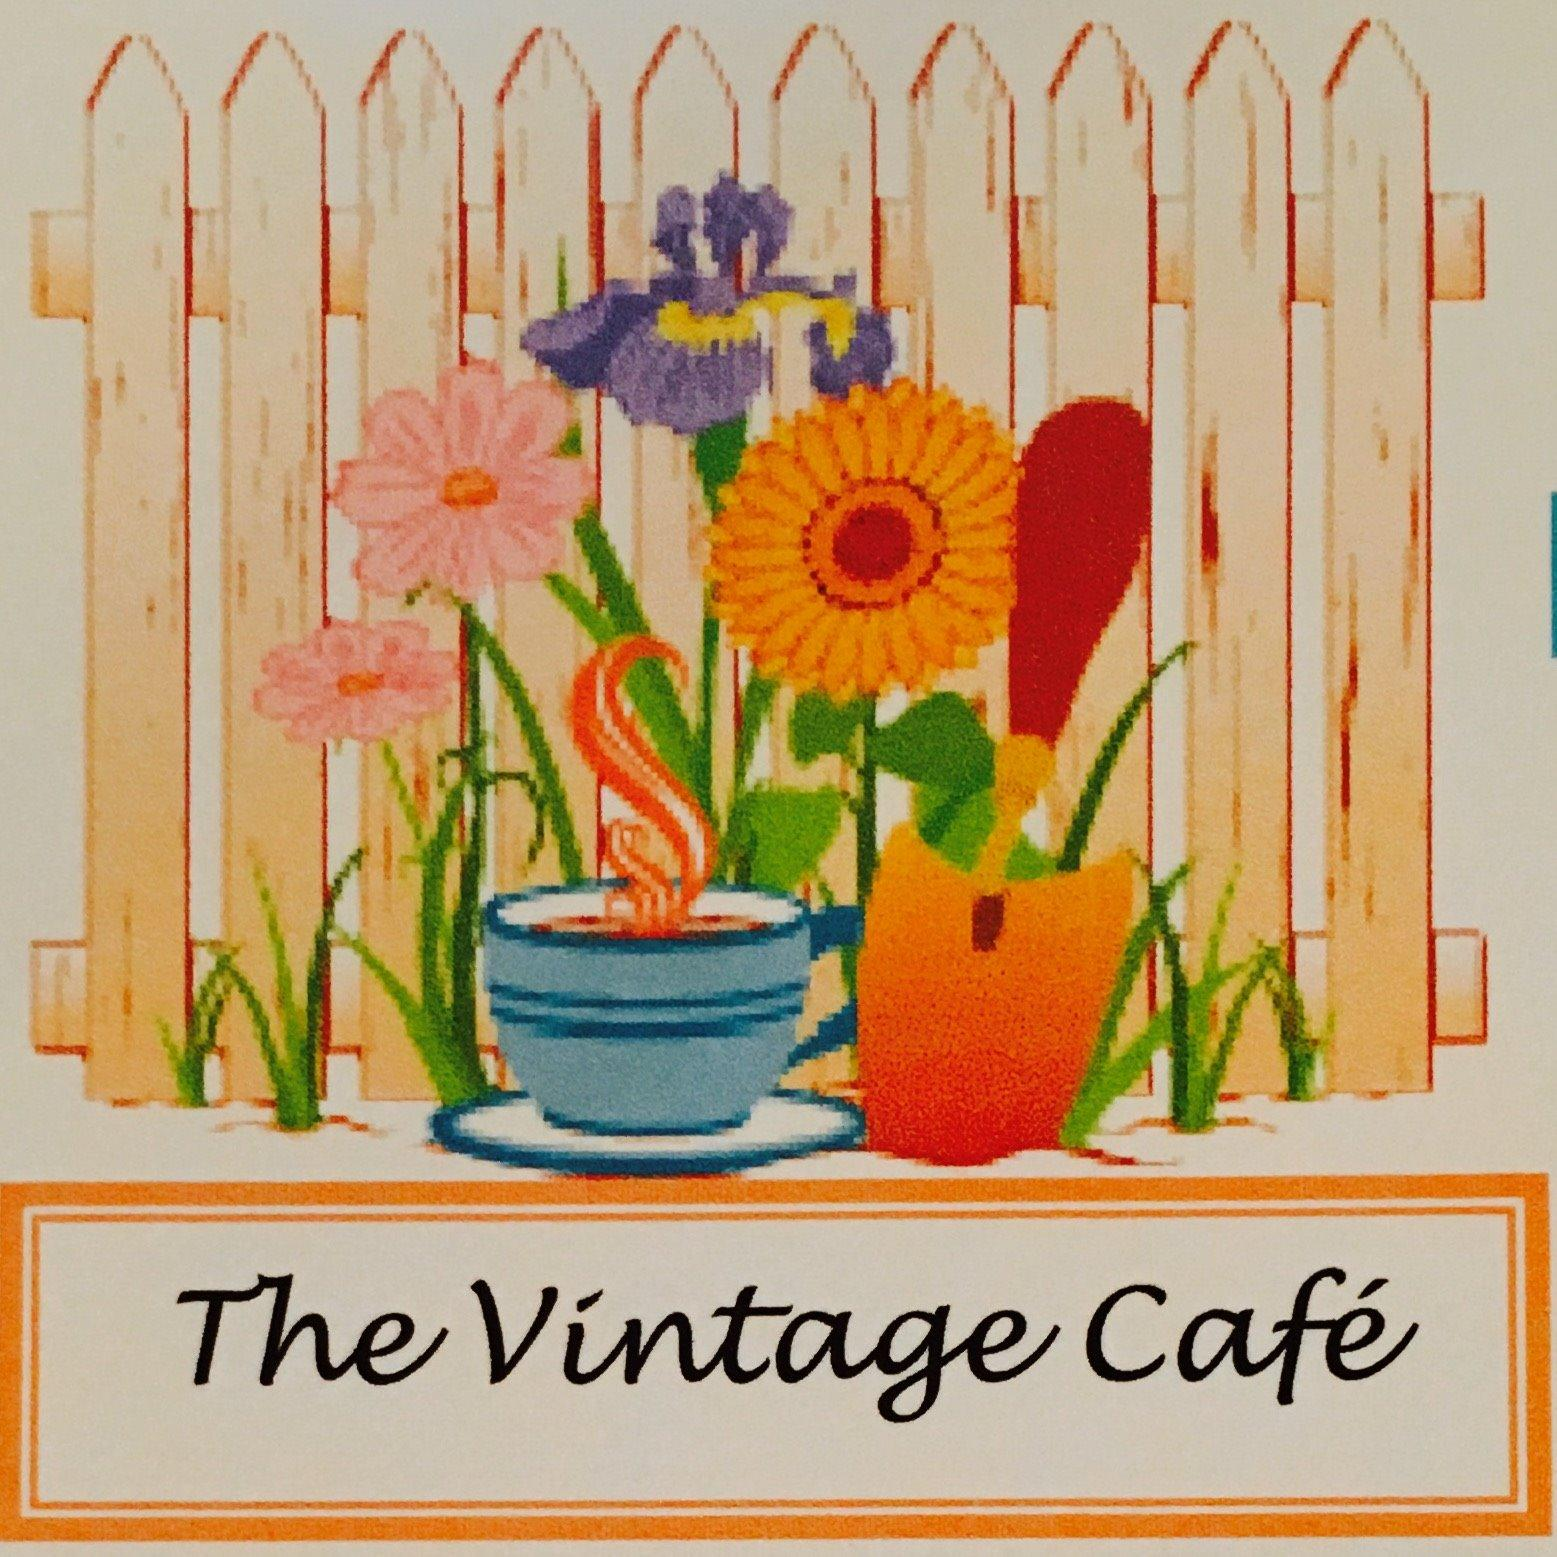 TheVintage Cafe